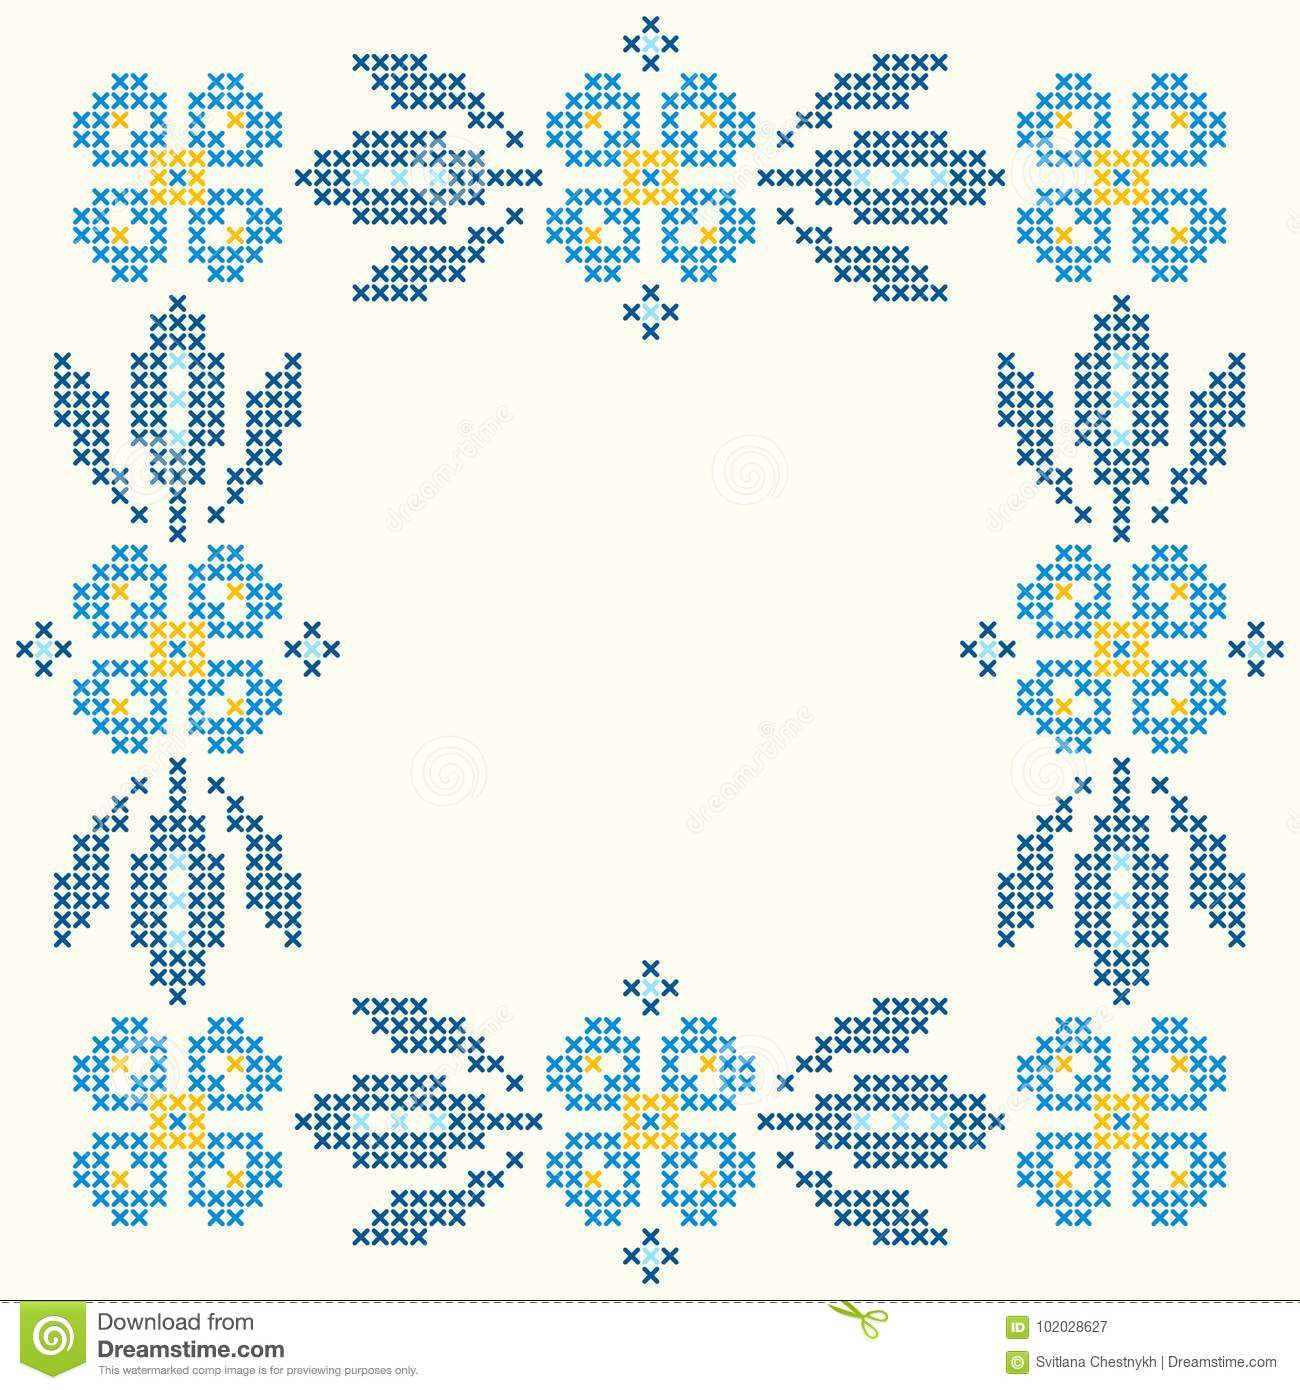 Cross-stitch embroidery in Ukrainian style. Embroidered square floral frame.